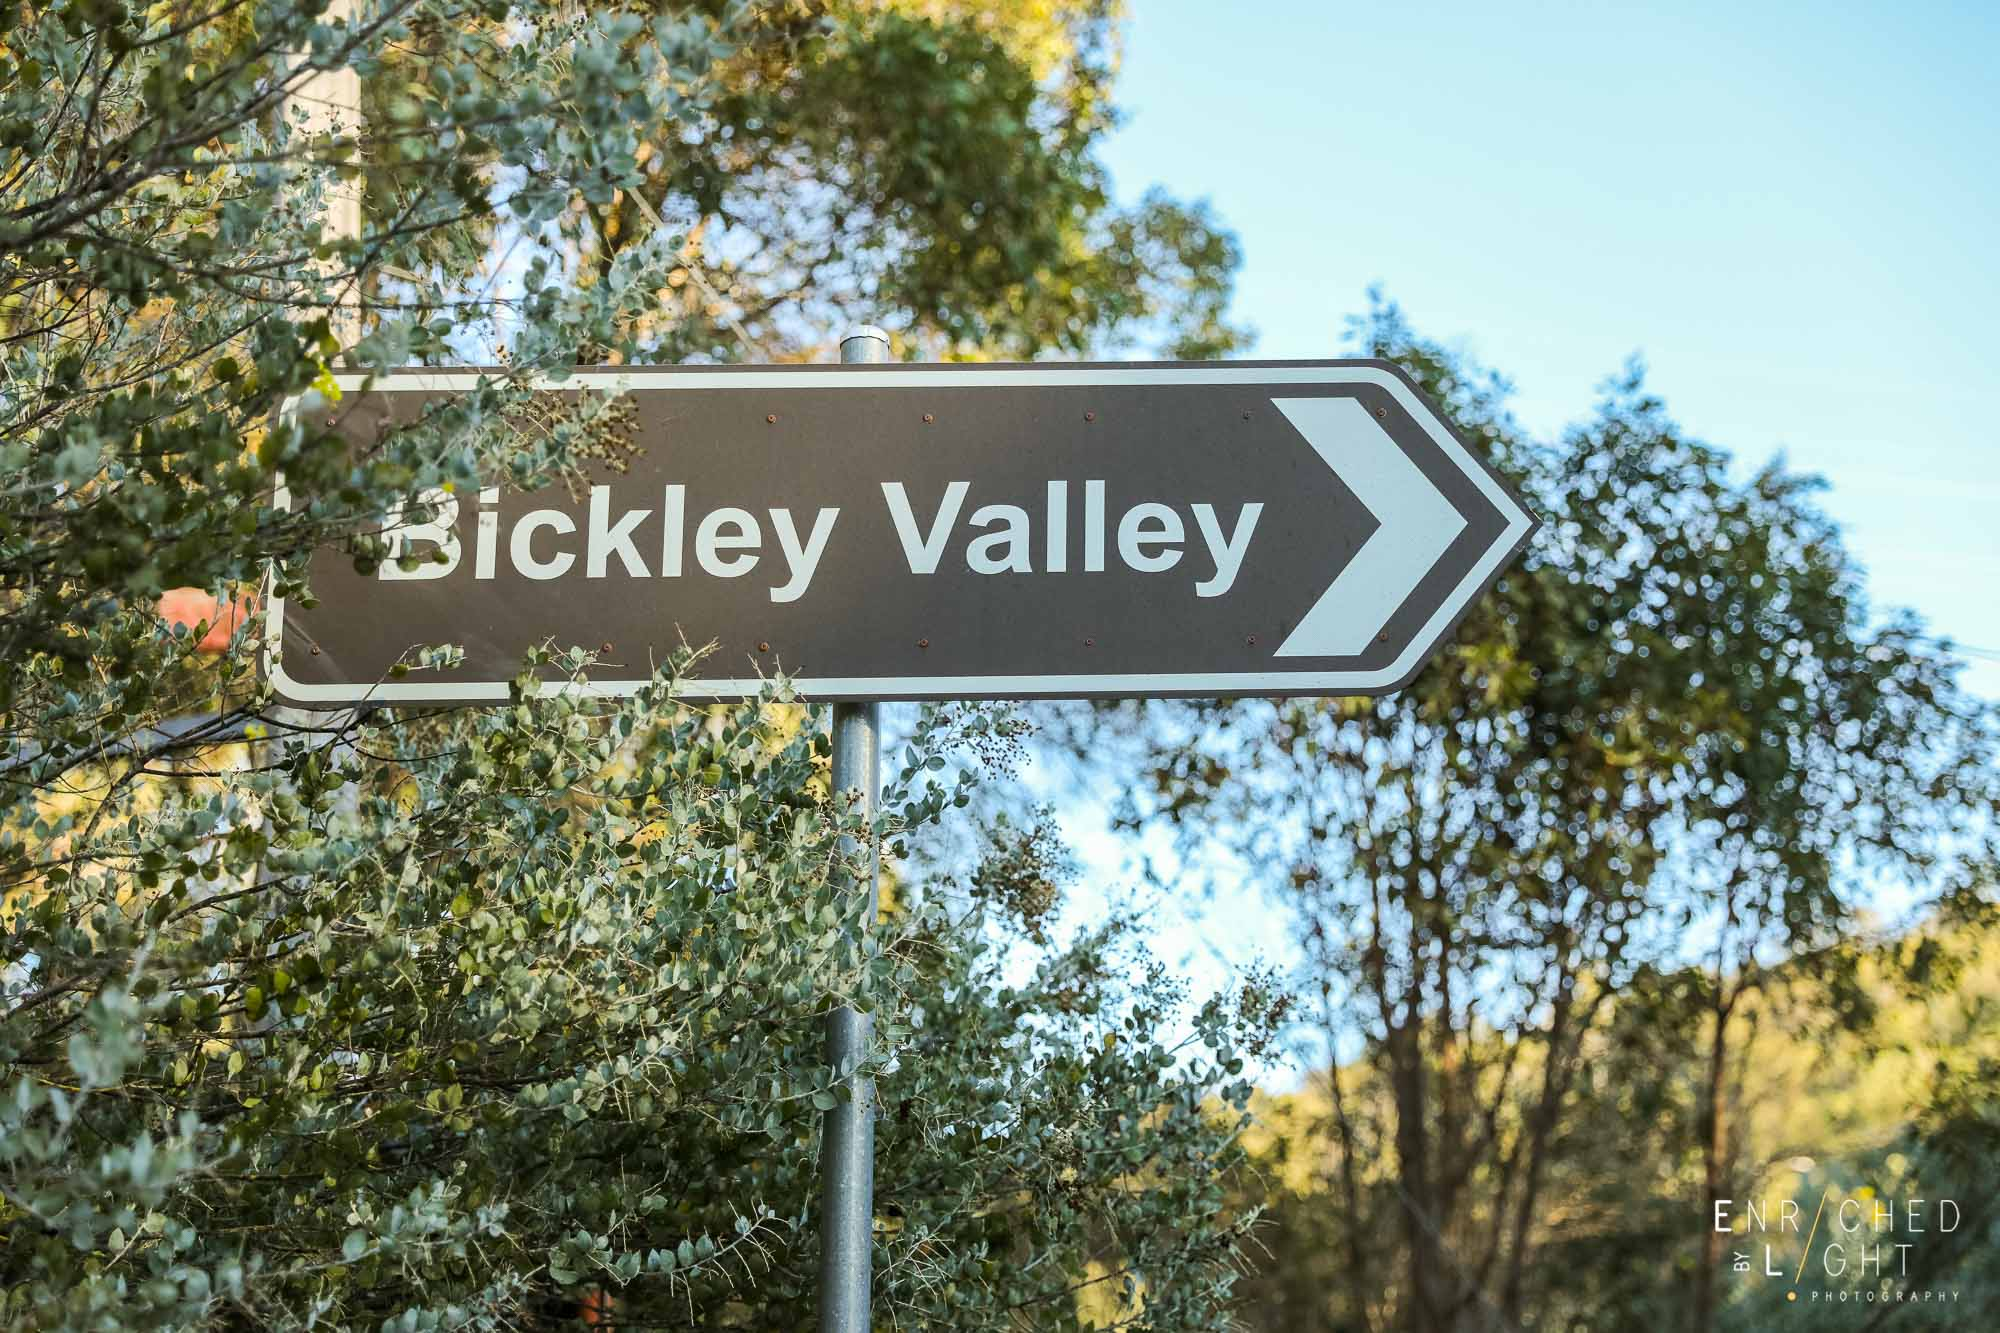 The Bickley Valley is a short 30 minute drive from Perth city